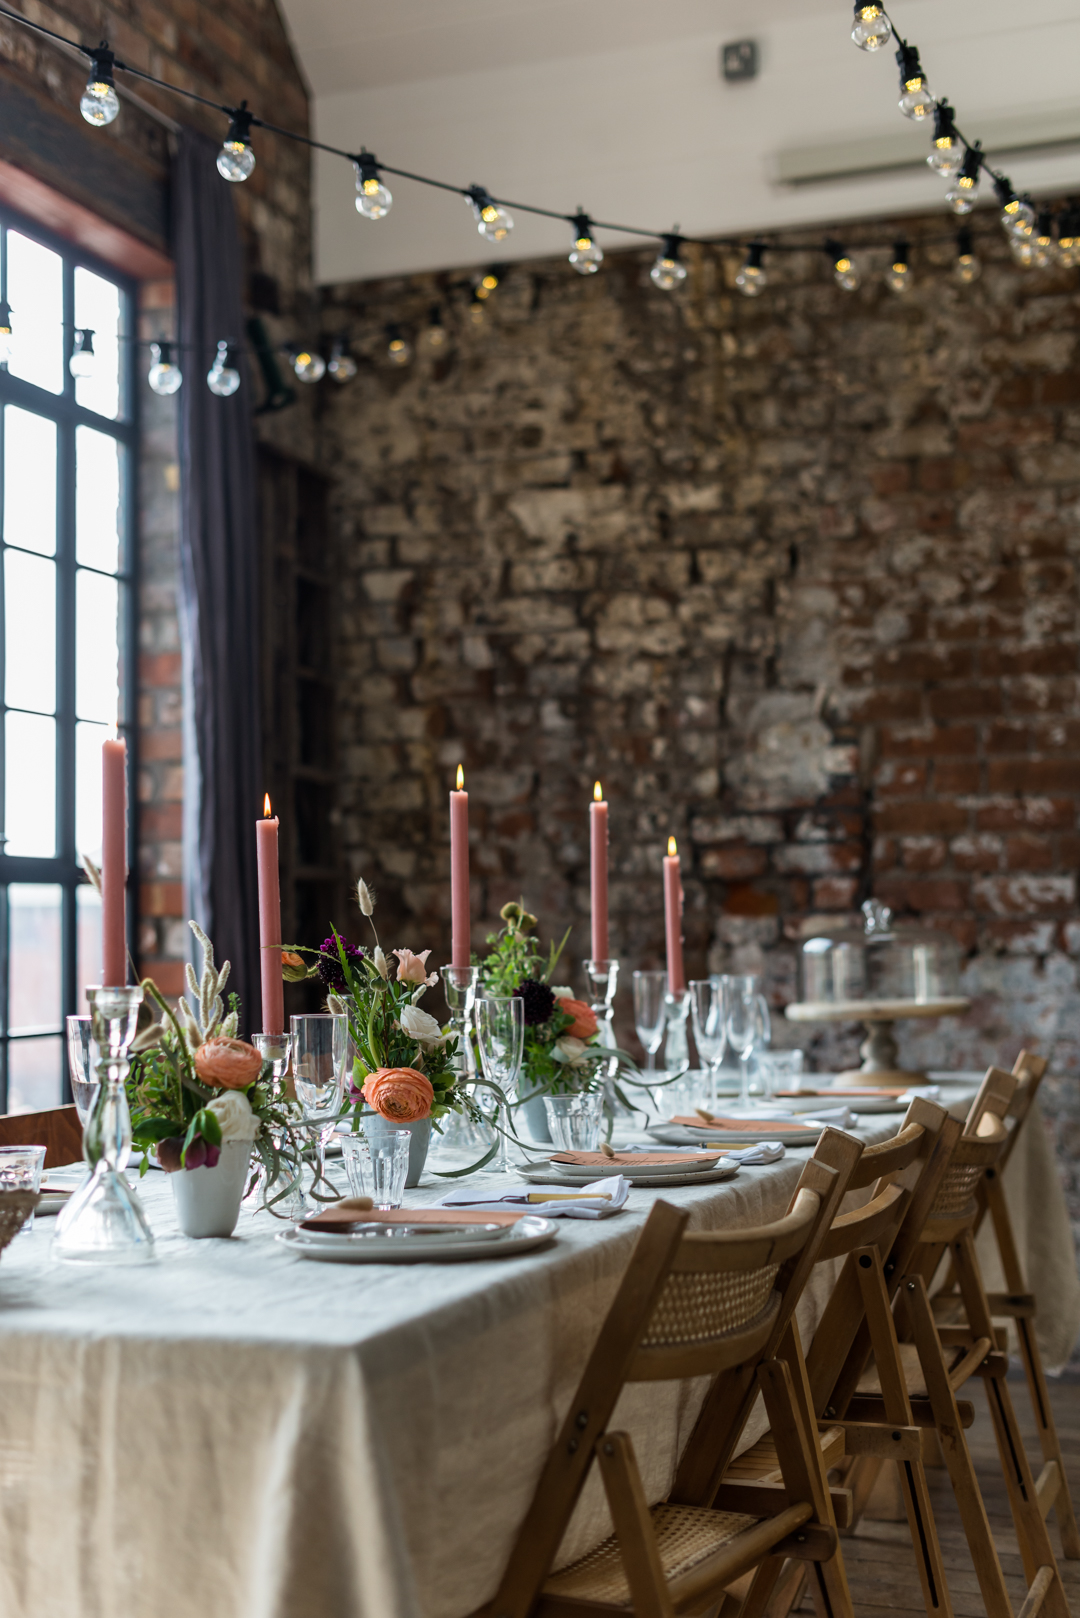 Beautiful private dining space and party venue for private hire in Bristol